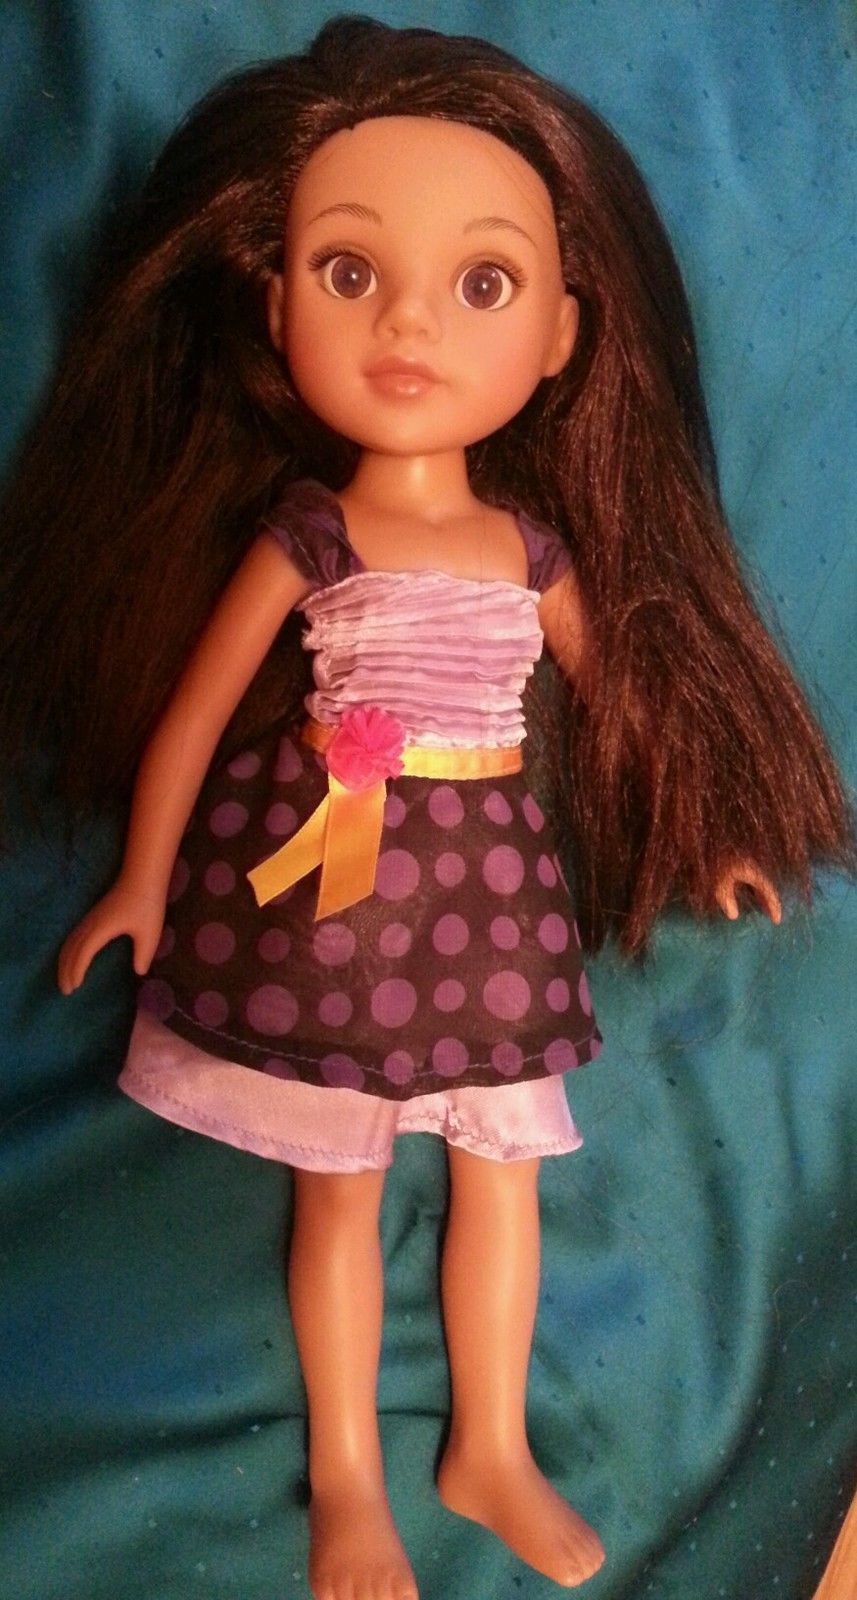 Gorgeous hearts for hearts doll | eBay